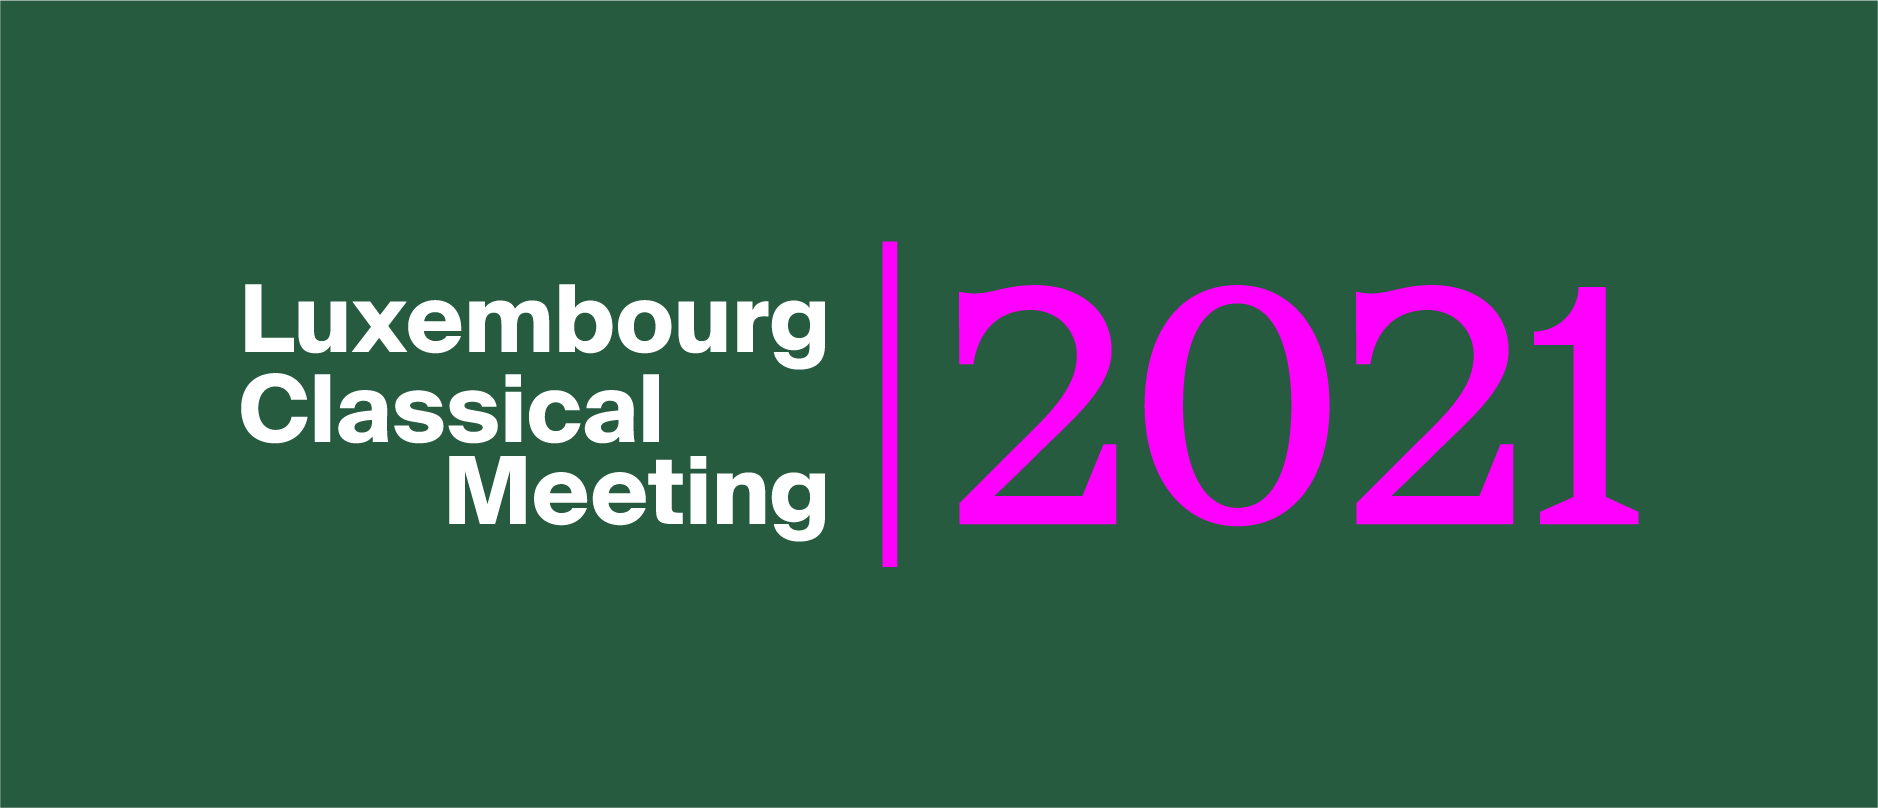 Luxembourg Classical Meeting showcases Luxembourgish's solists, ensembles and young talents